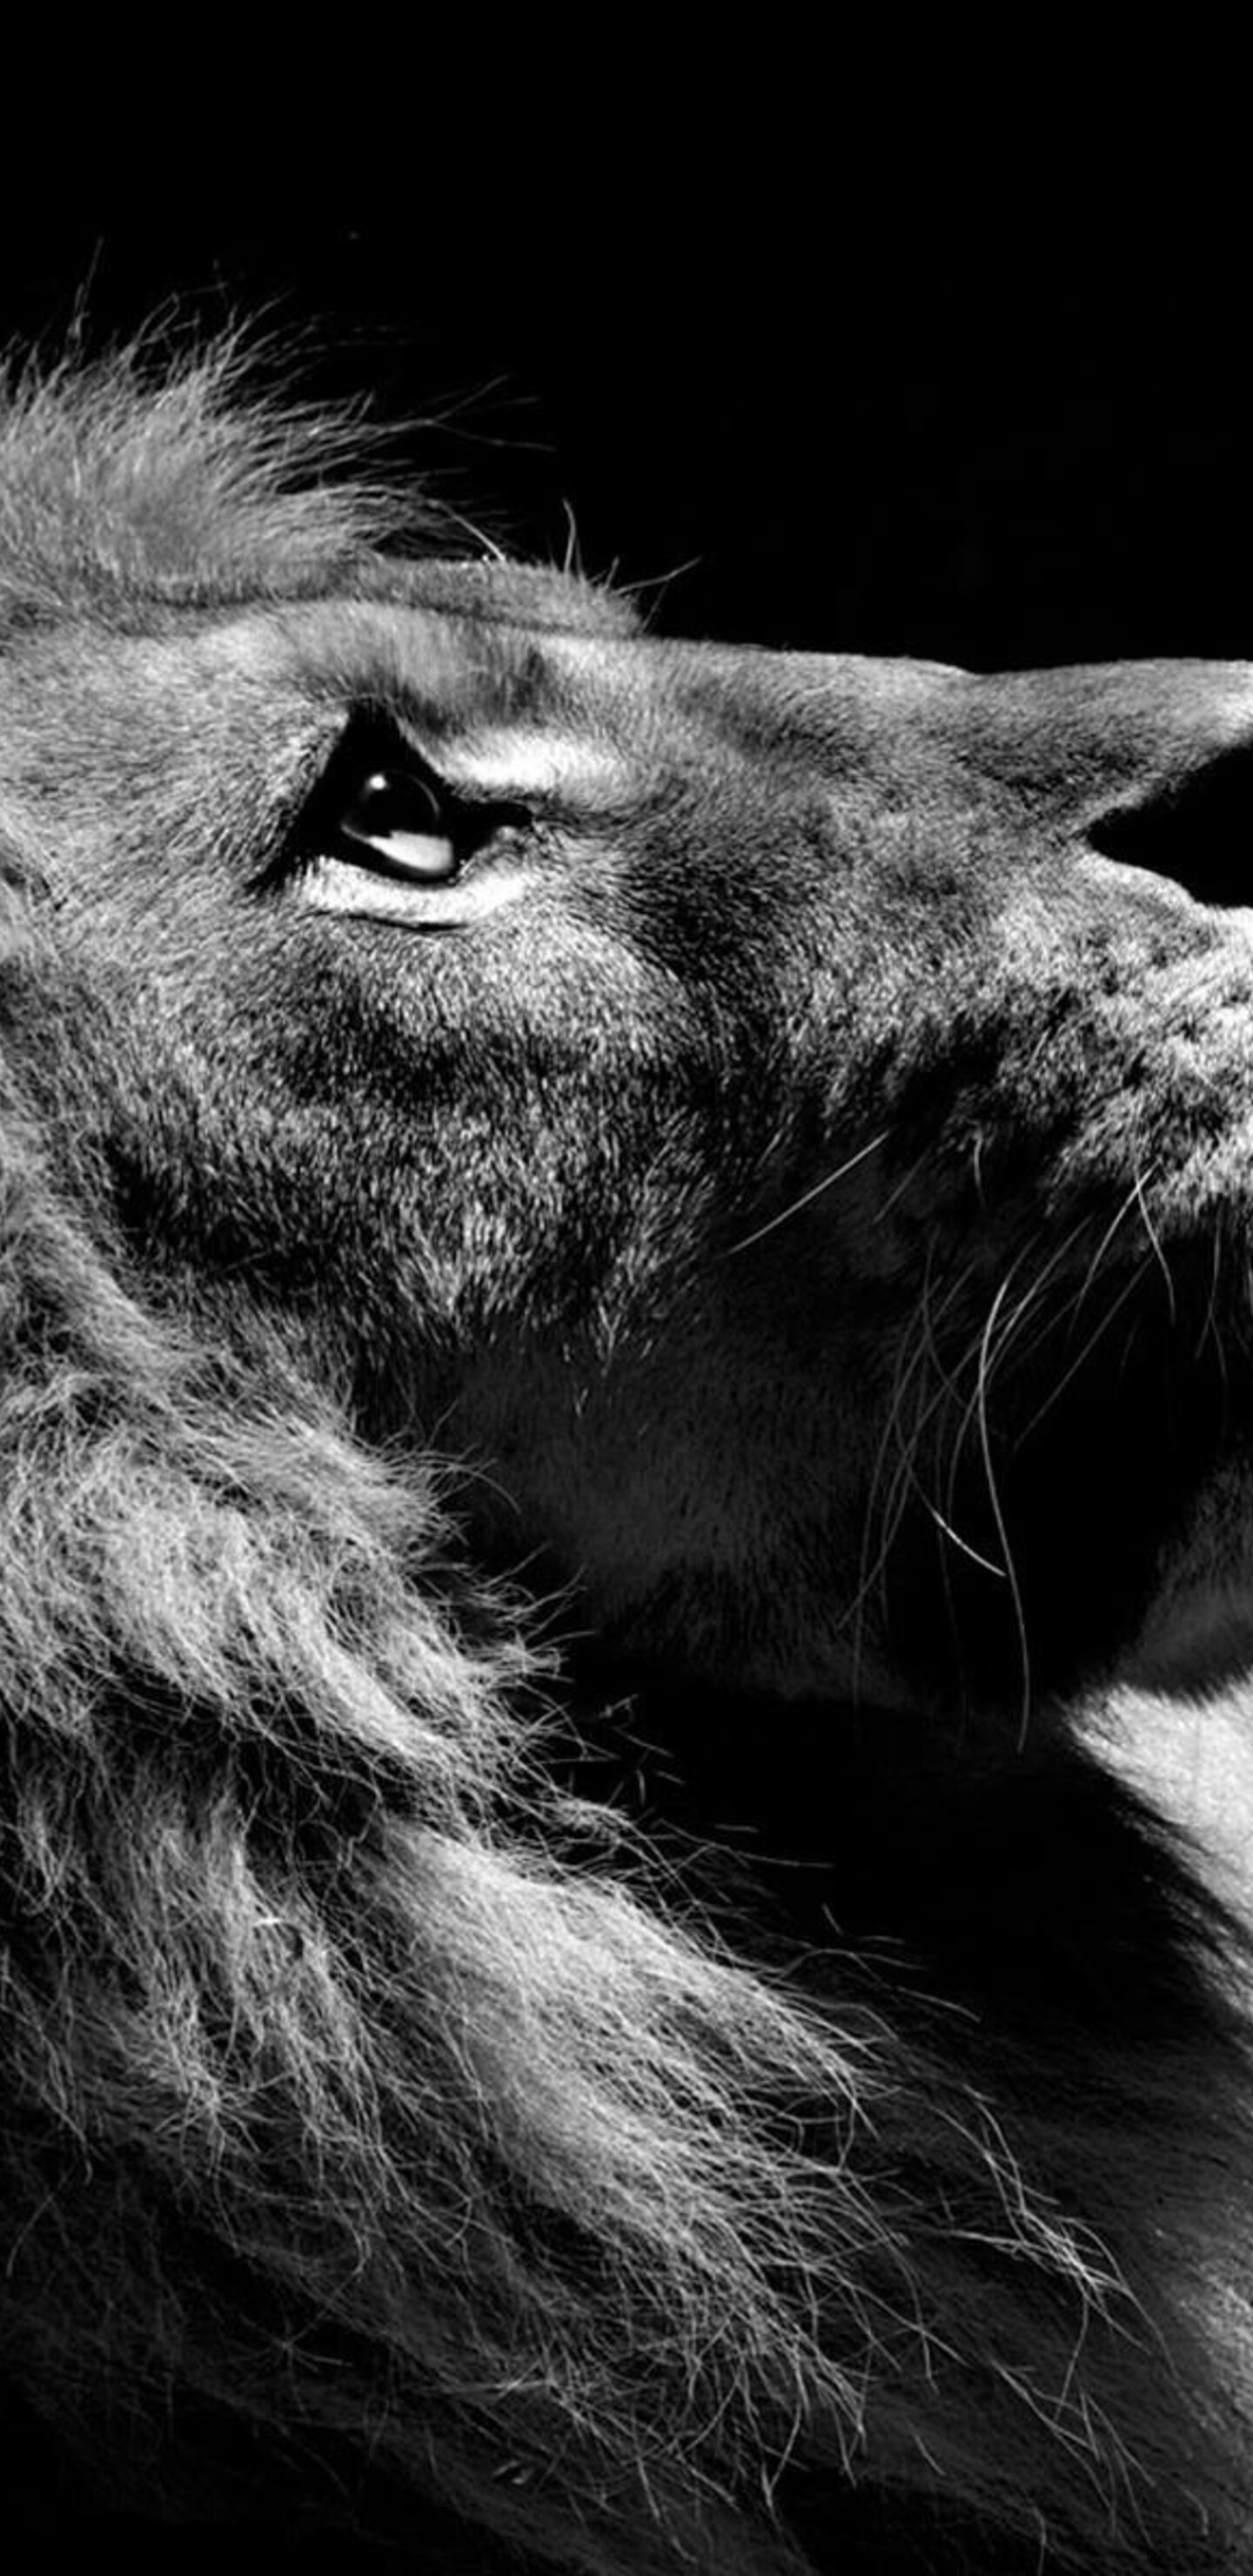 1440x2960 Lion Black And White Samsung Galaxy Note 98 S9